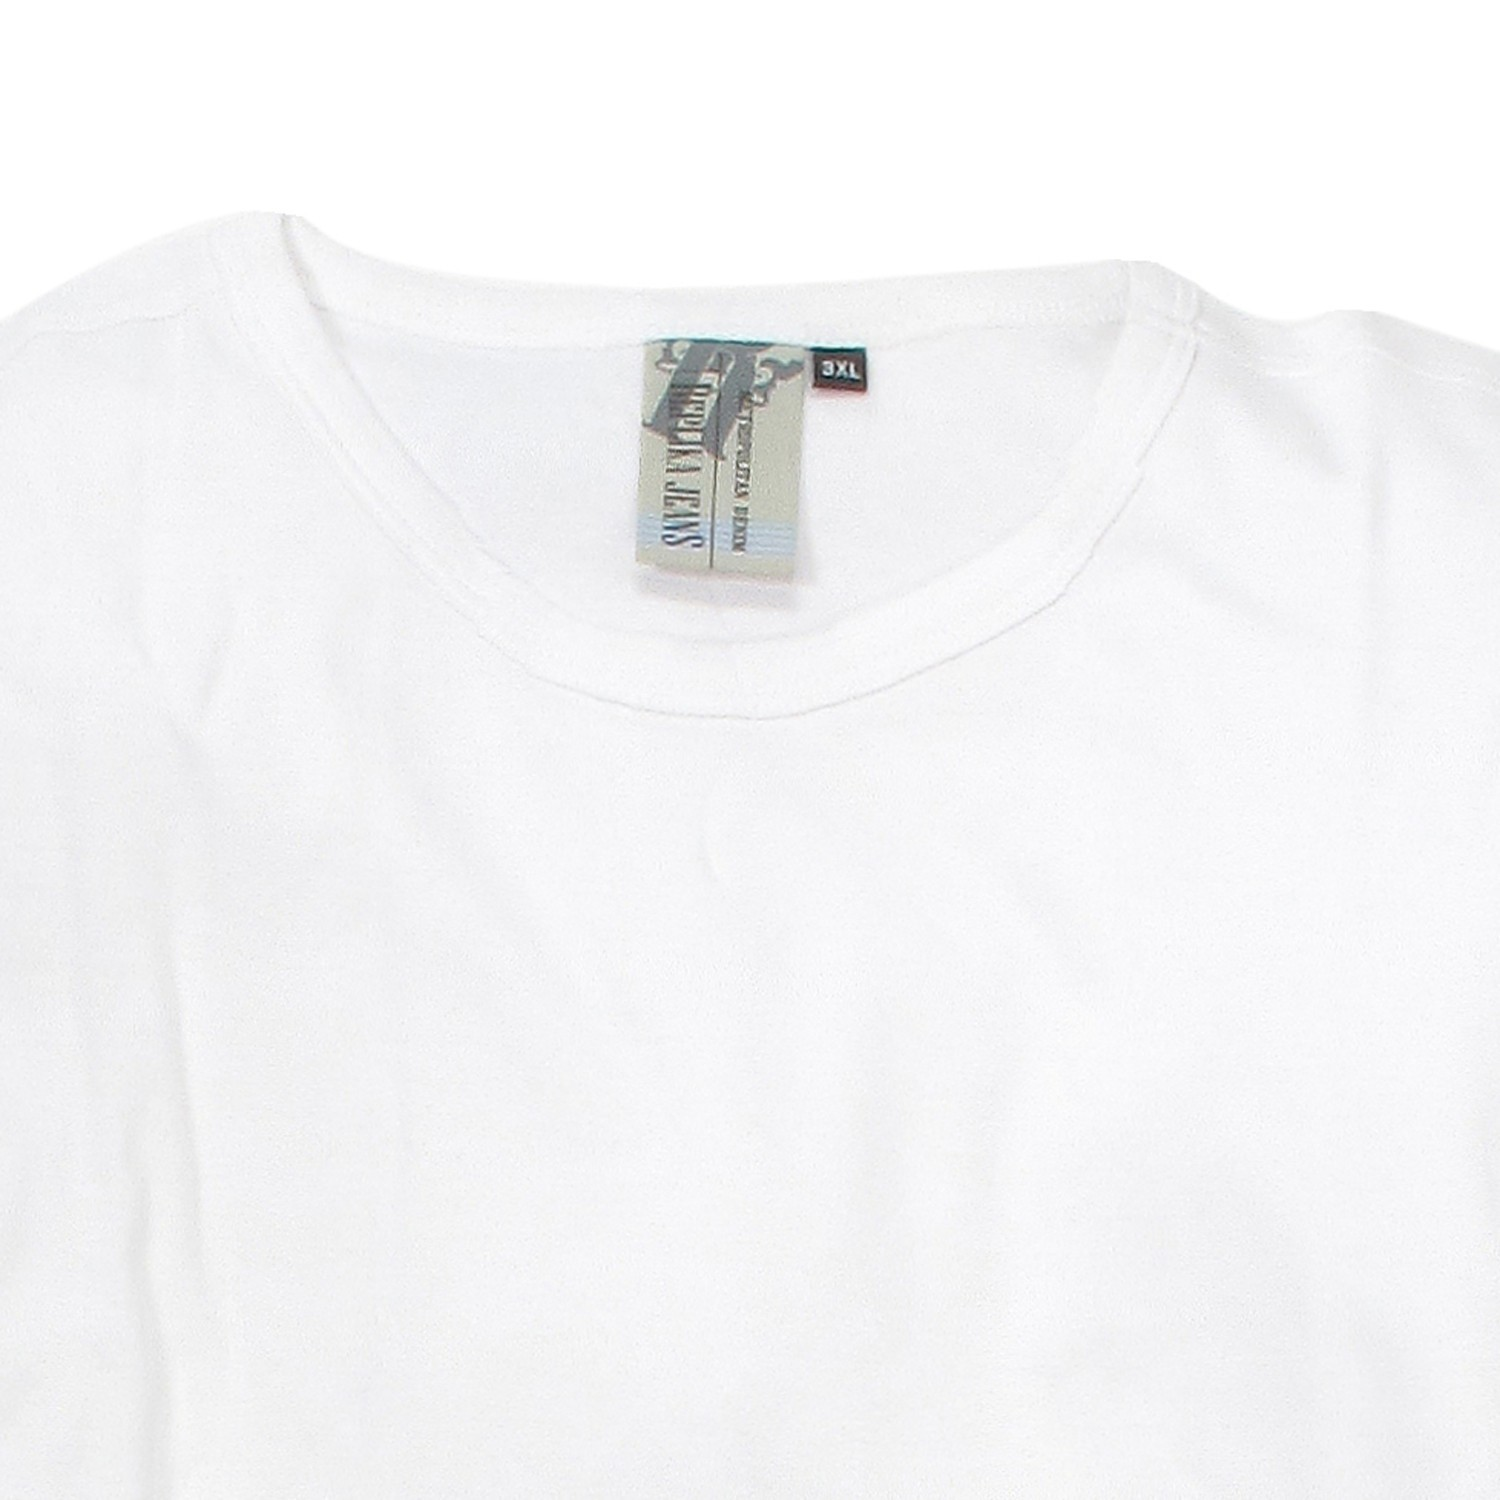 Detail Image to White longsleeve for men by Replika up to oversize 8XL